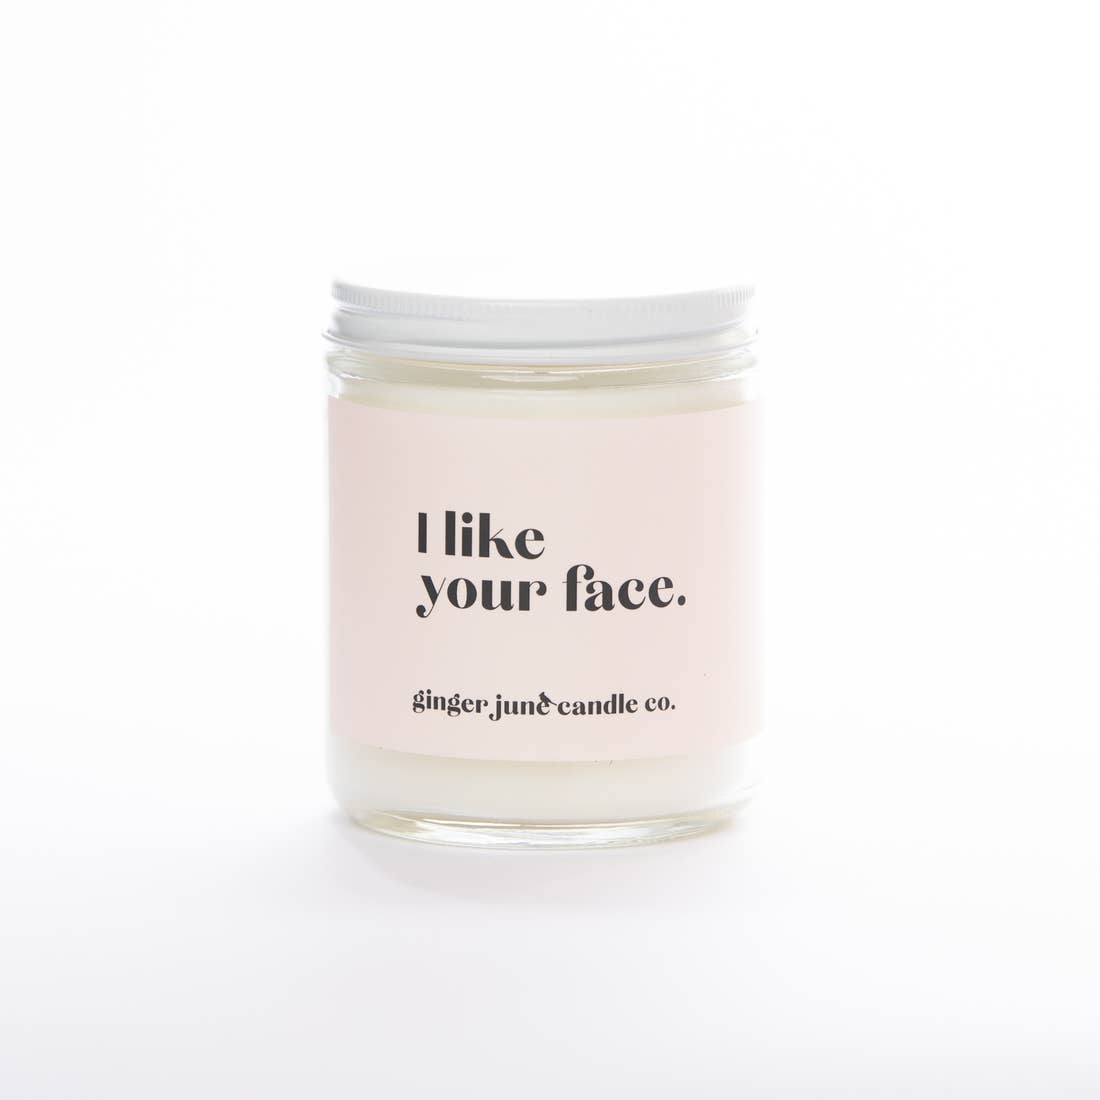 I Like Your Face Candle in Olive Leaf